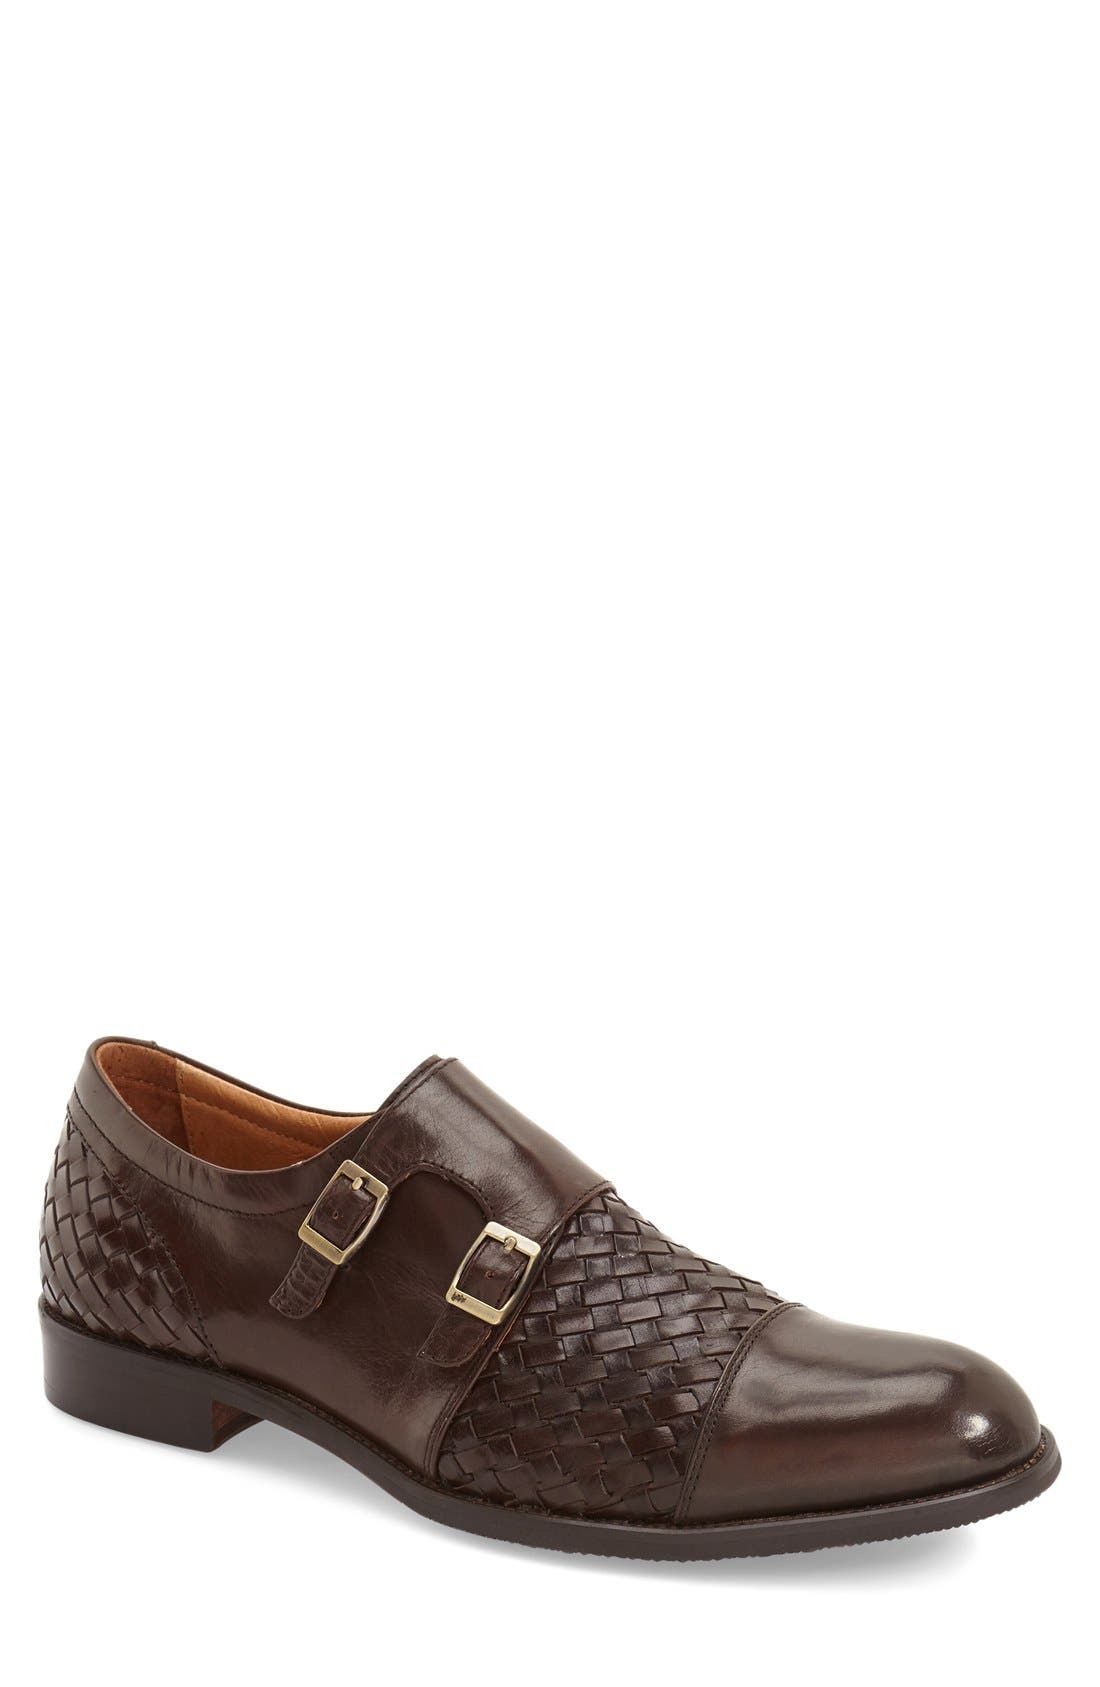 Alternate Image 1 Selected - Zanzara 'Mahler' Monk Strap Shoe (Men)